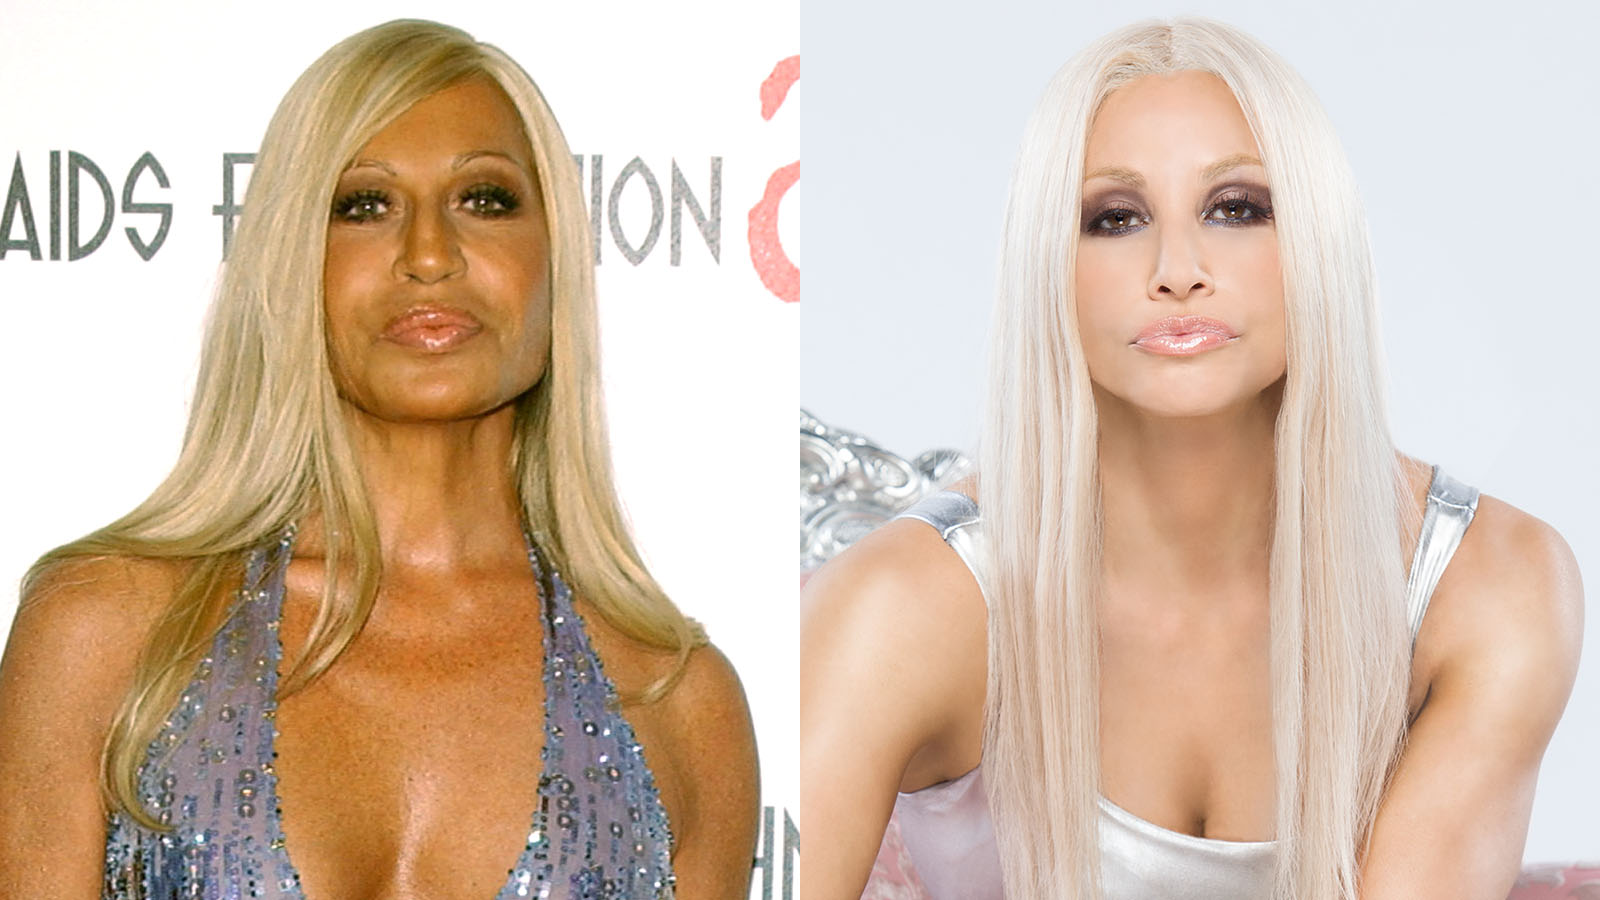 Whoa, Whoa, It's Magic: Lifetime Transforms Gina Gershon Into Donatella Versace